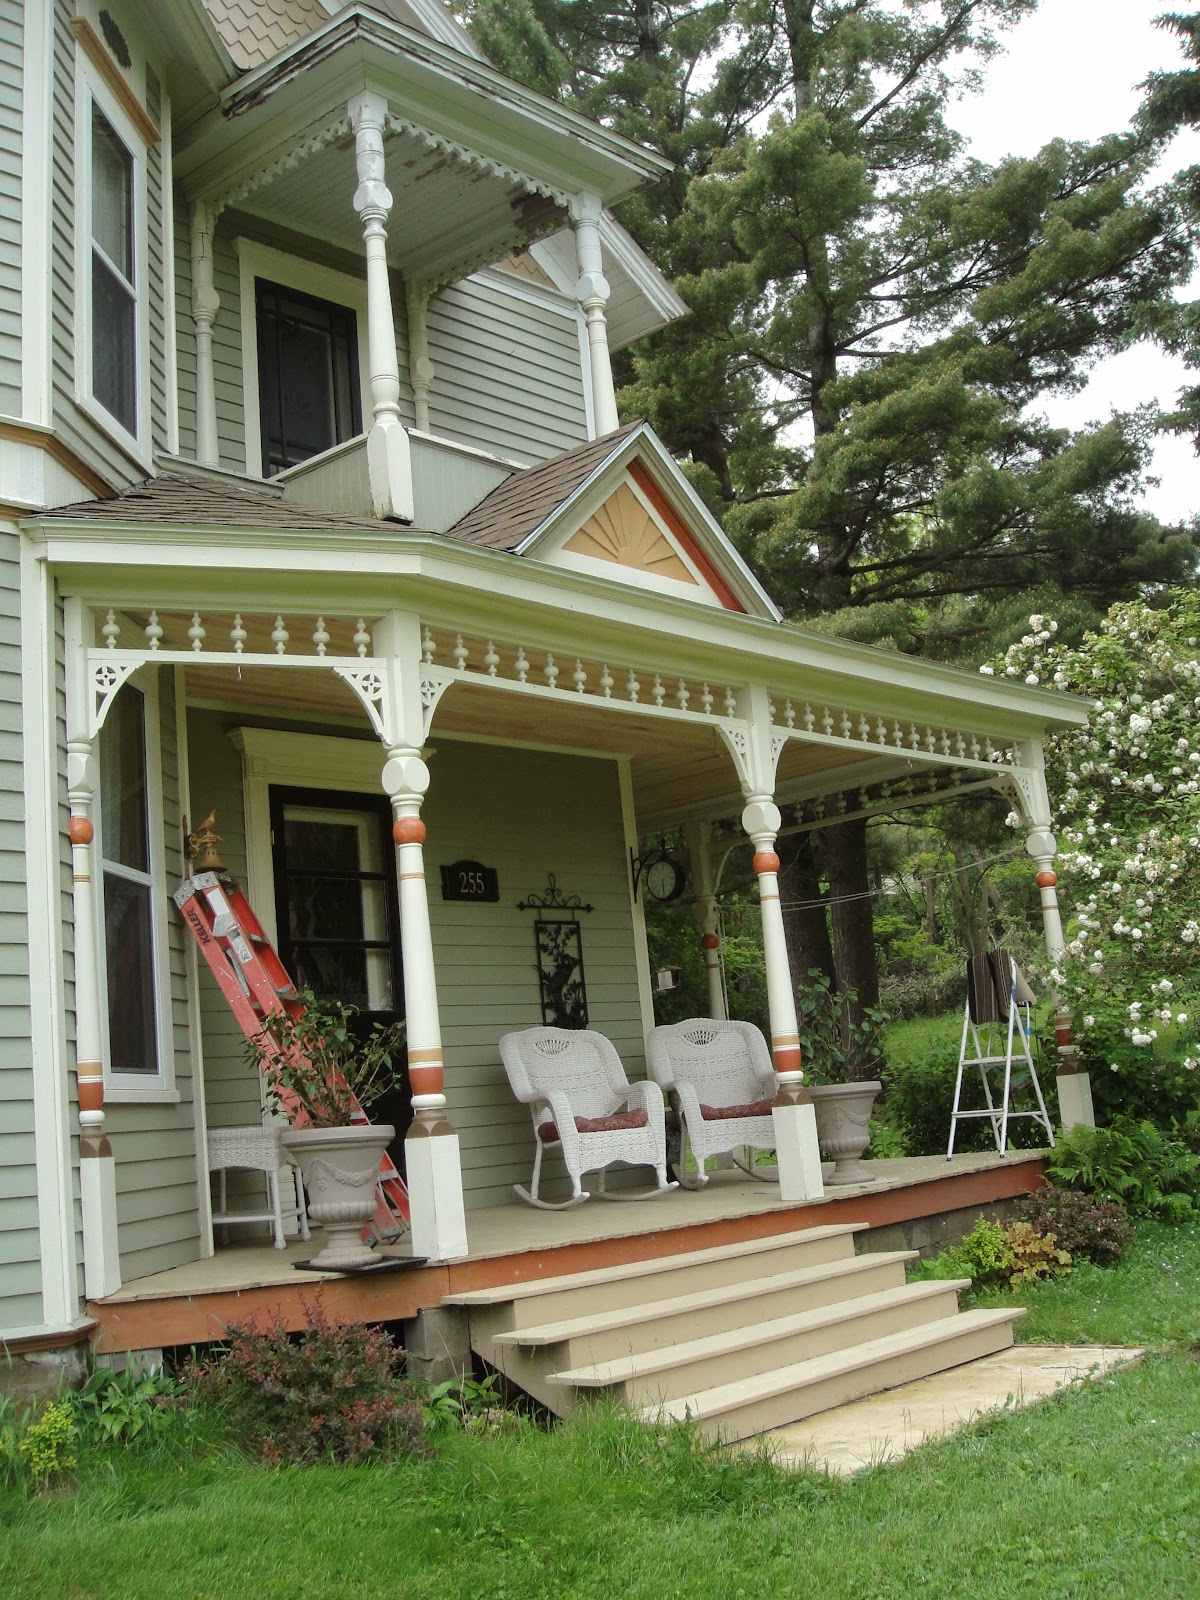 1893 Victorian Farmhouse: Front Porch Gets New Ceiling